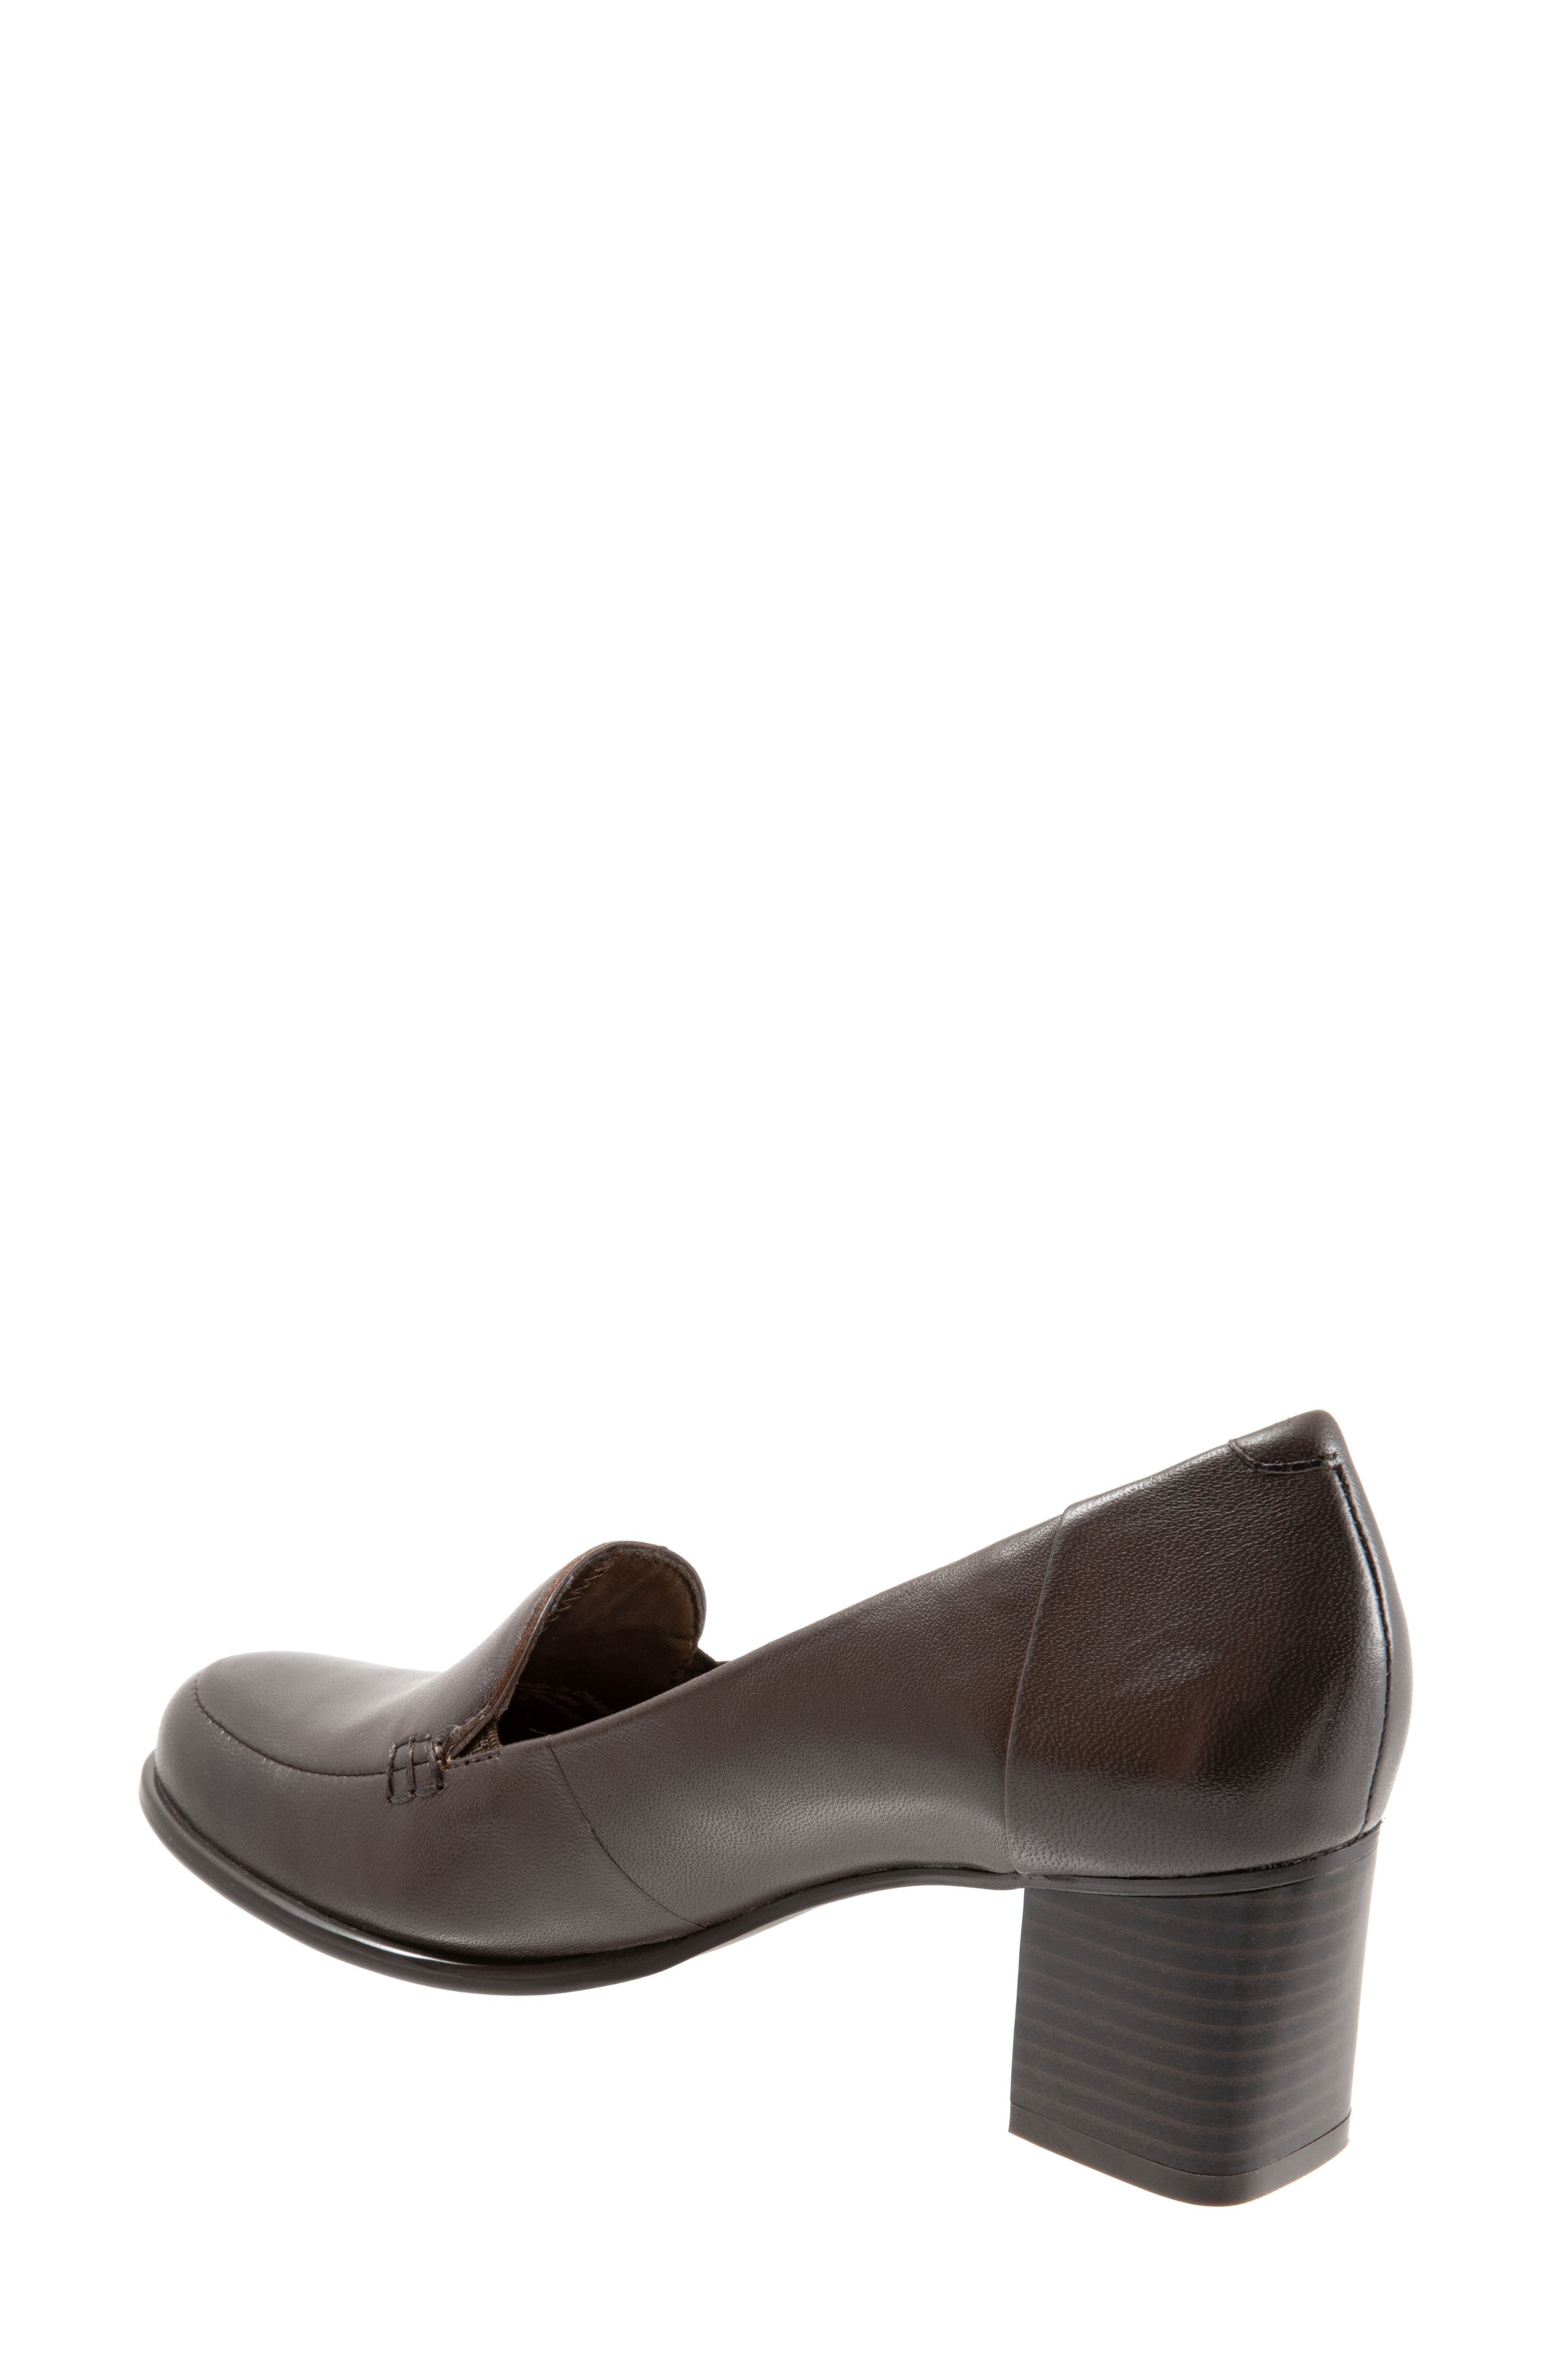 Quincy Loafer Pump,                             Alternate thumbnail 2, color,                             DARK BROWN LEATHER